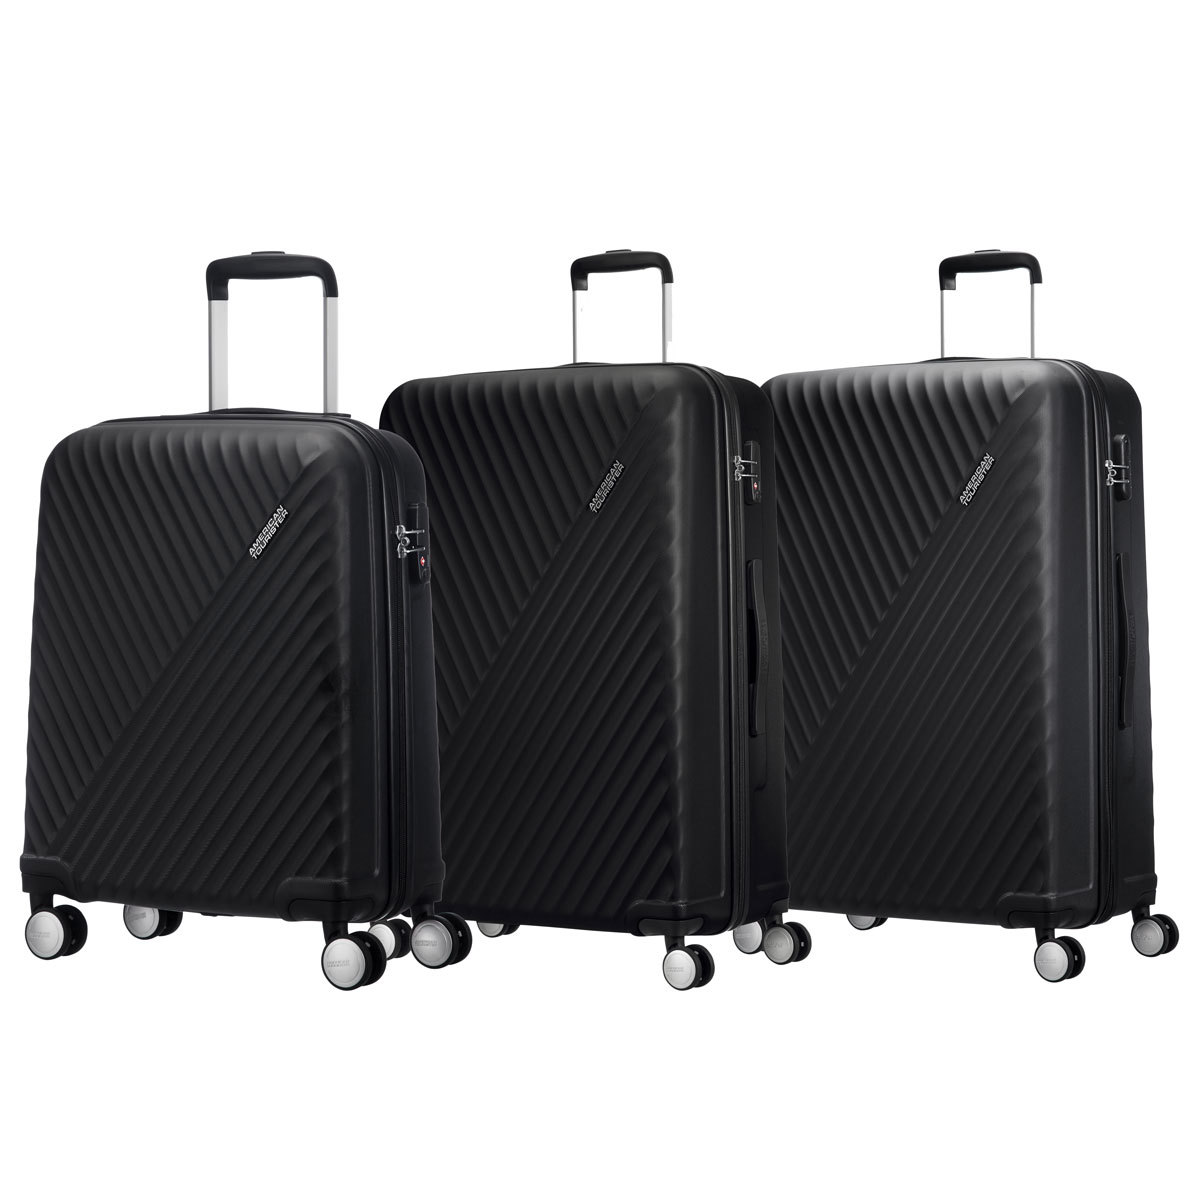 American Tourister Luggage Price In Kuwait